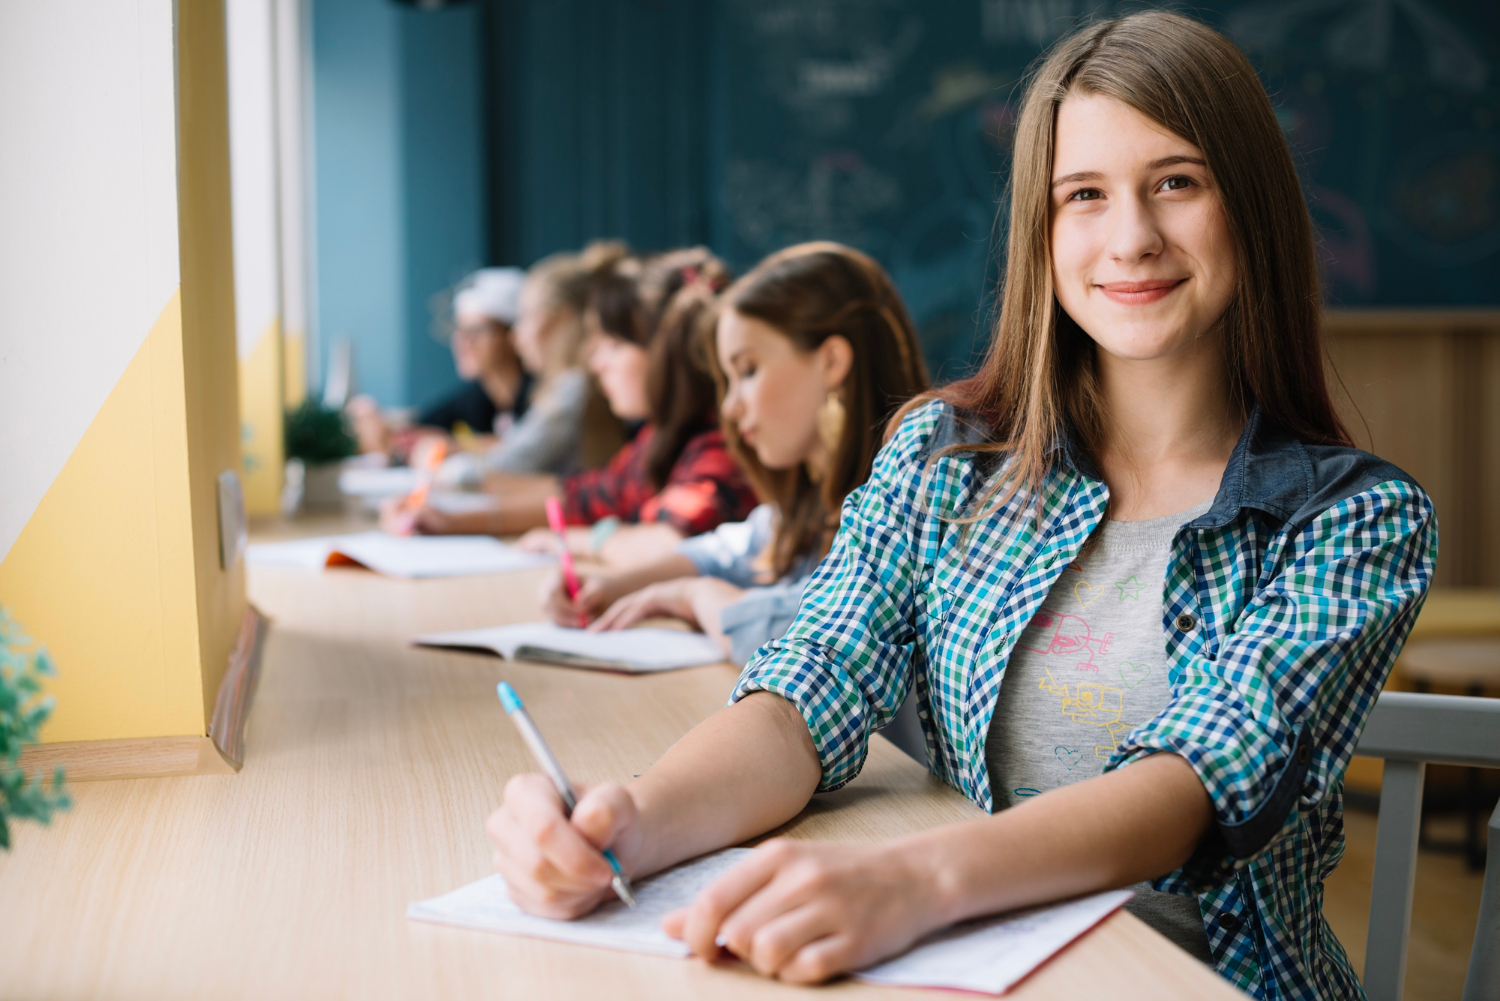 cheerful-teen-girl-student-with-classmates